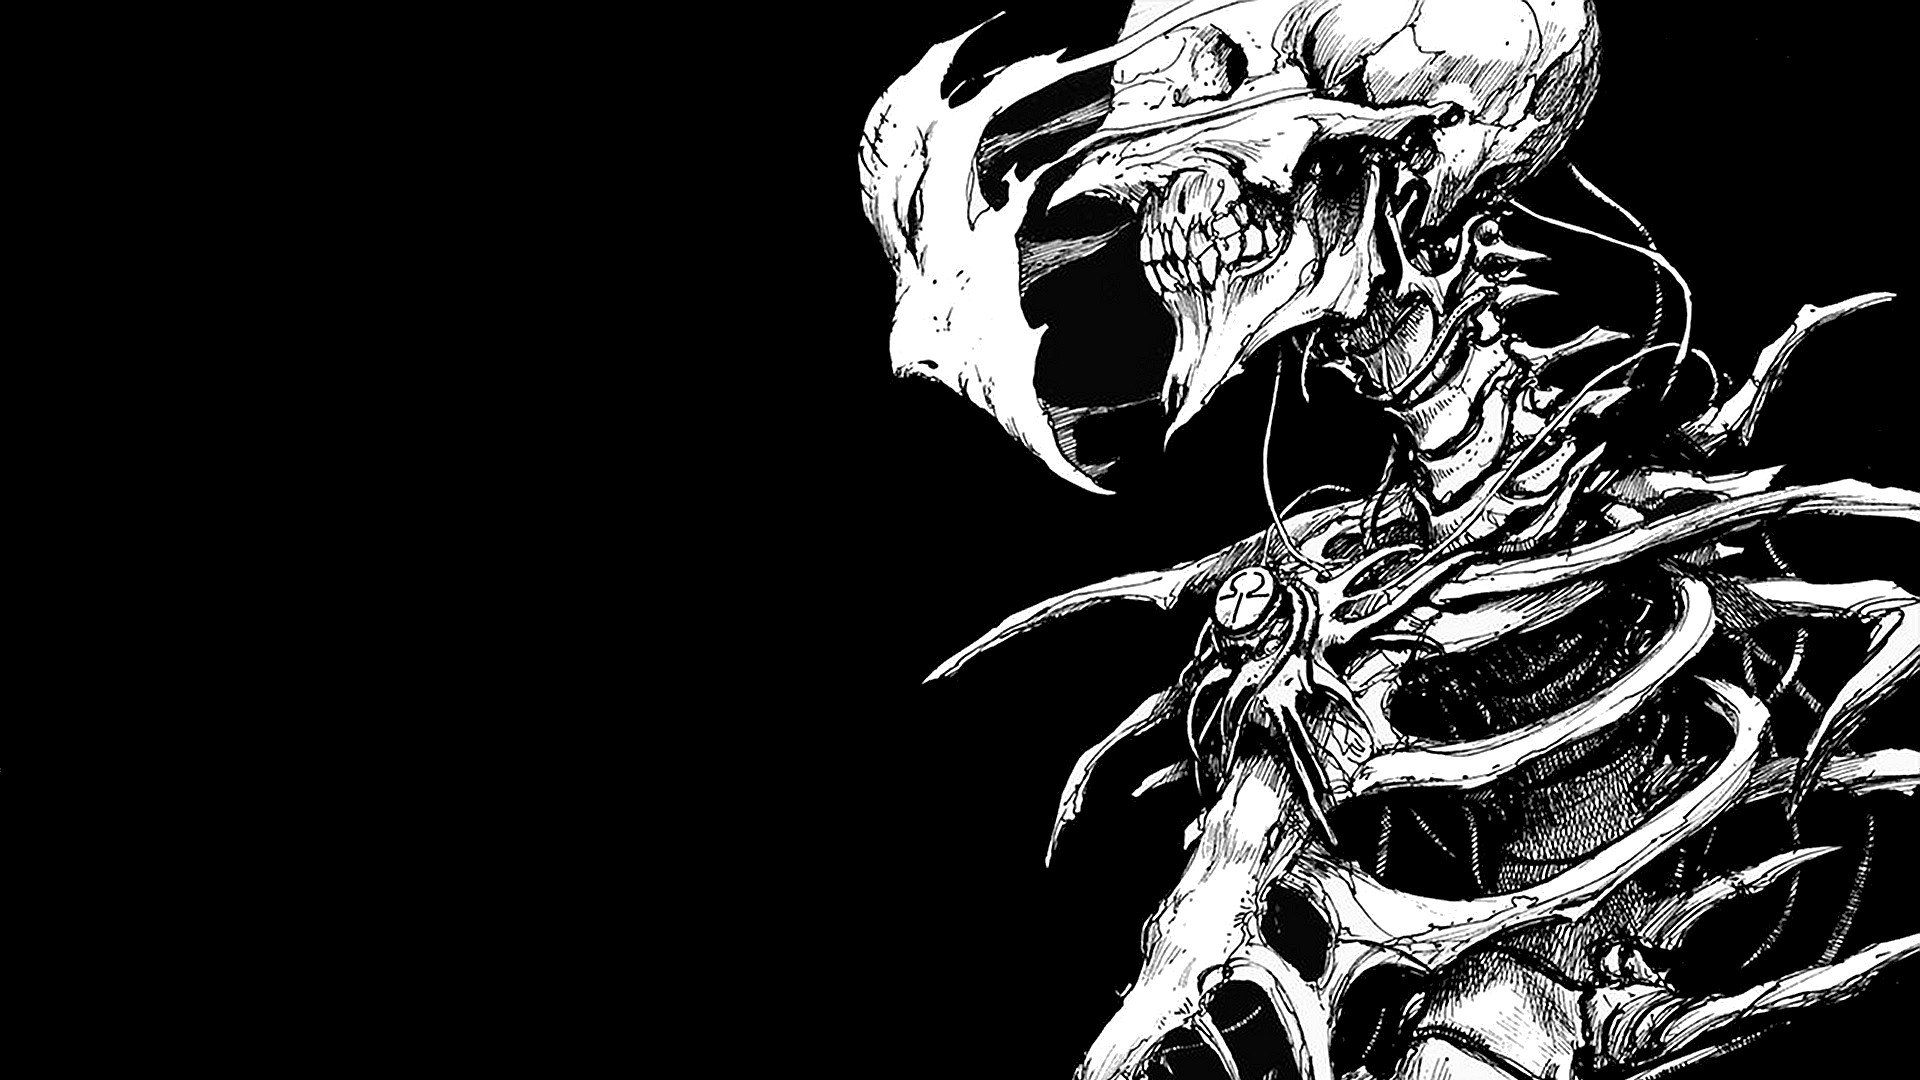 Skeleton wallpaper ·① Download free cool HD wallpapers for ...